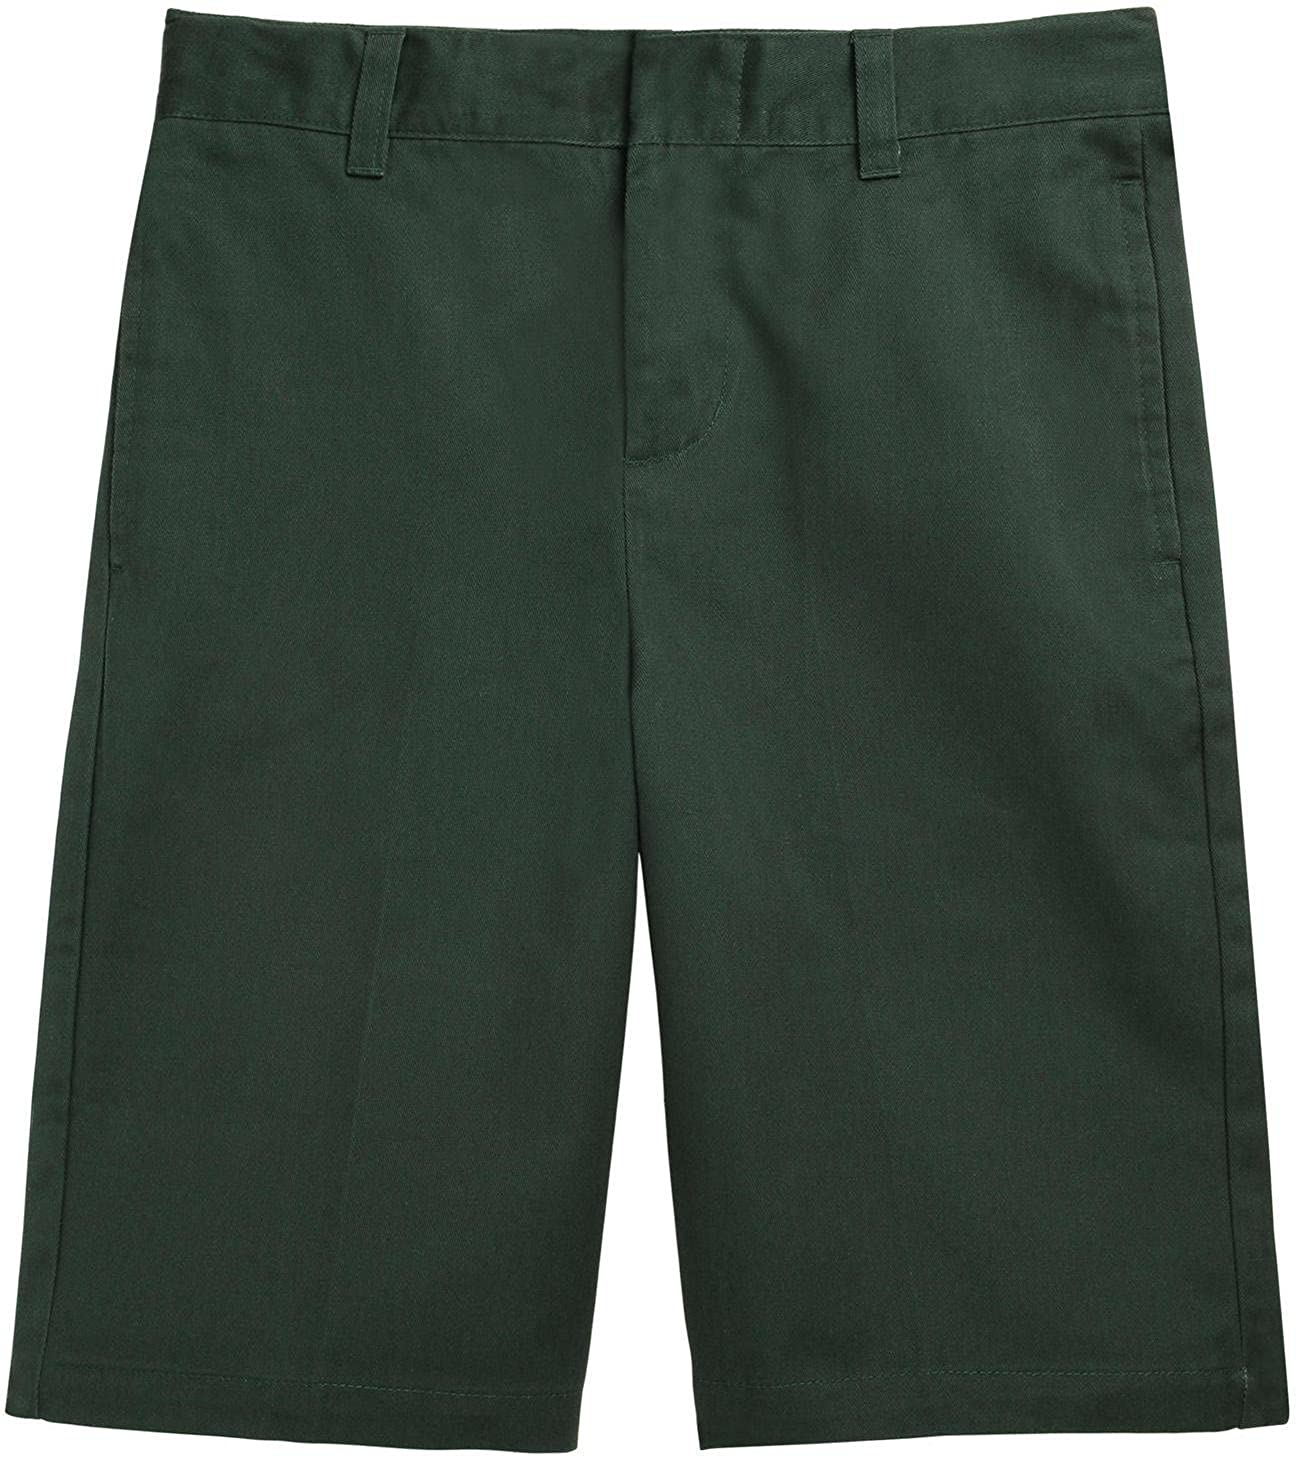 French Toast School Uniform Boys Flat Front Adjustable Waist Shorts, Hunter Green, 12